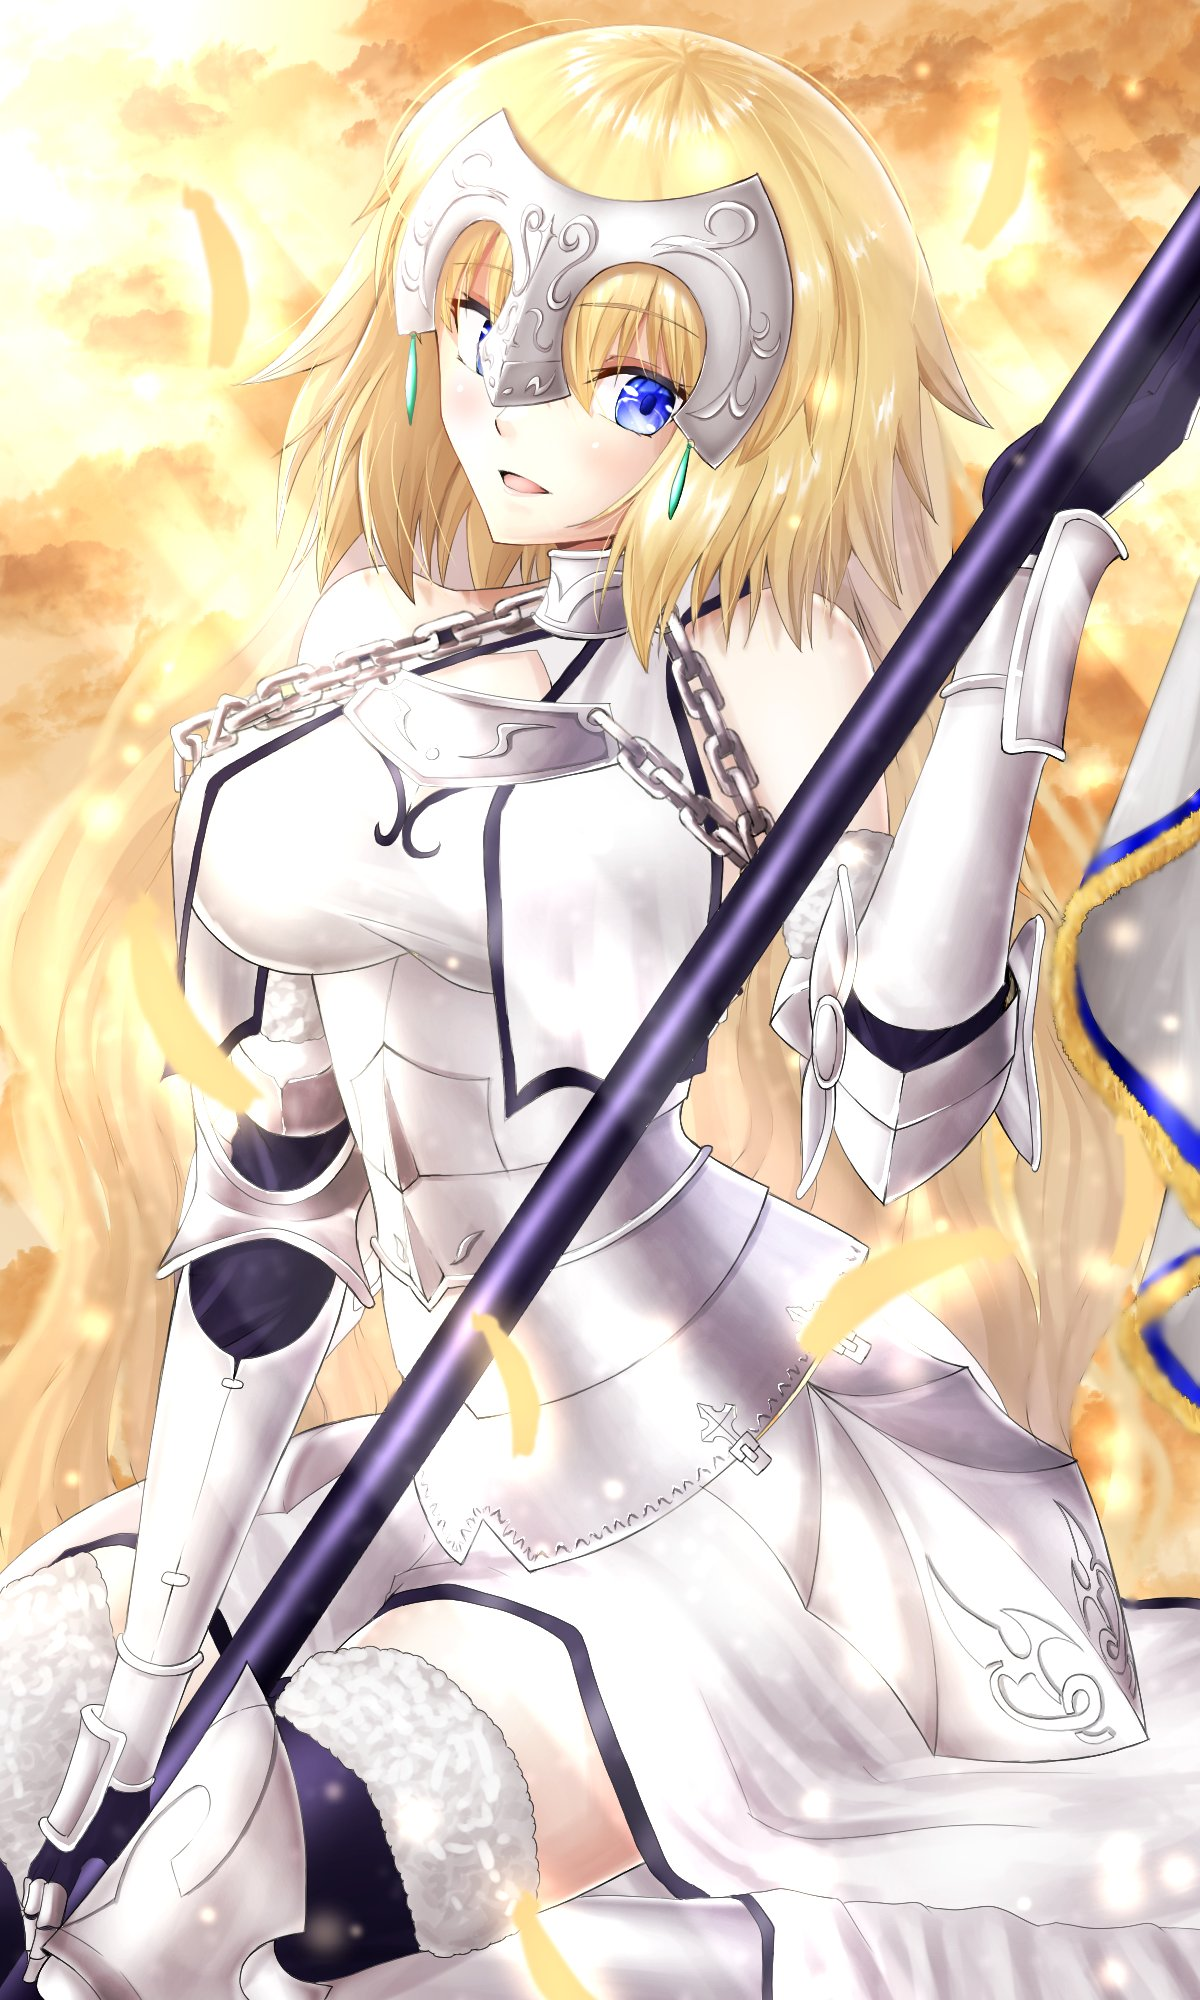 1girl armor armored_dress bangs blonde_hair blue_eyes blush breasts chain collar dress fate/apocrypha fate/grand_order fate_(series) faulds flag gauntlets headpiece highres ilsa34660285 jeanne_d'arc_(fate) jeanne_d'arc_(fate)_(all) large_breasts long_hair looking_at_viewer metal_collar open_mouth plackart polearm sitting smile very_long_hair weapon white_dress